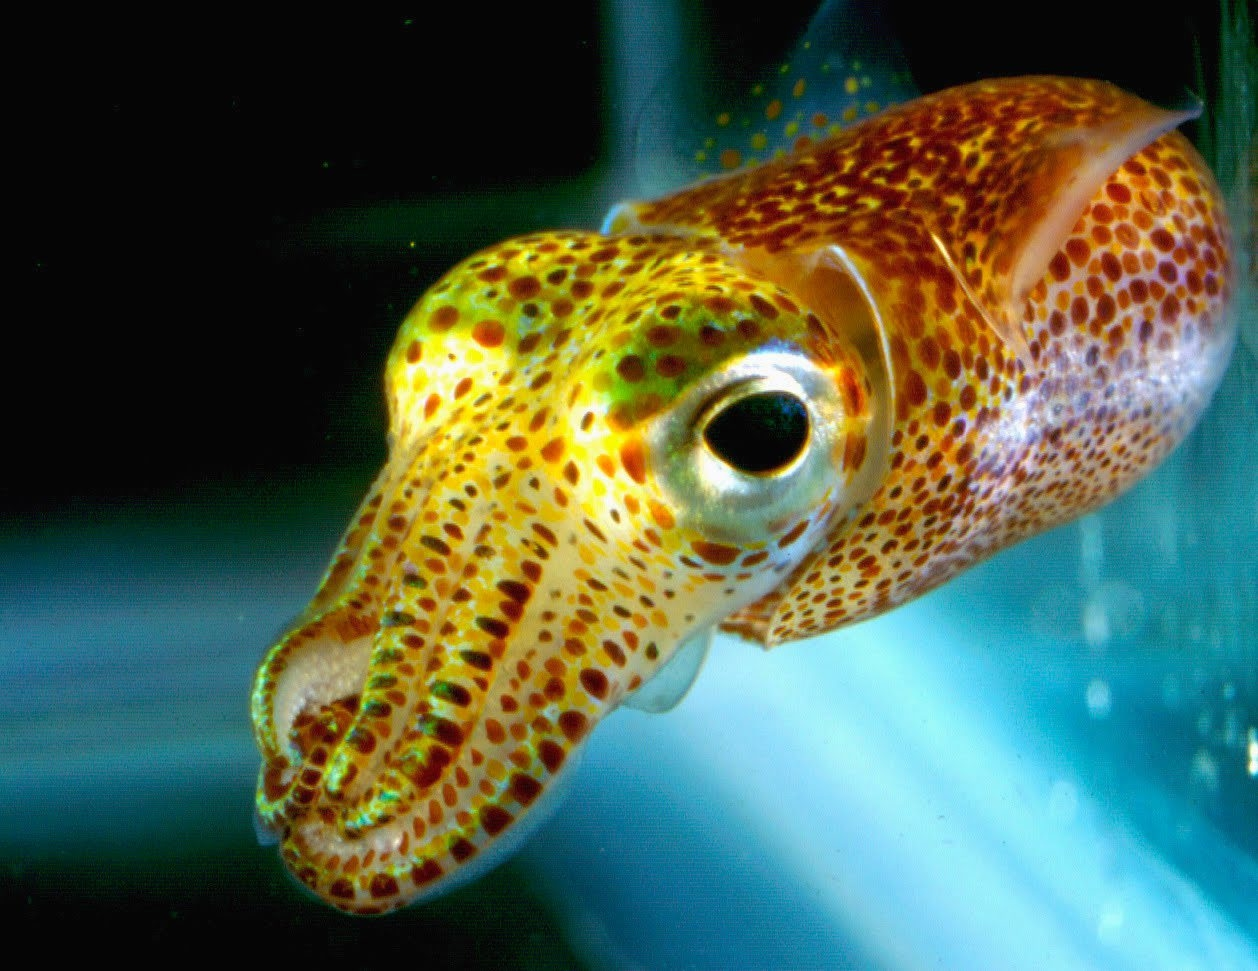 A study of Hawaiian bobtail squid indicates that, in addition to external light, the nocturnal creature may be guided by light-generating bacteria that live in its body, telling the squid's internal clock when it is time to forage for food and when it is time to sleep.